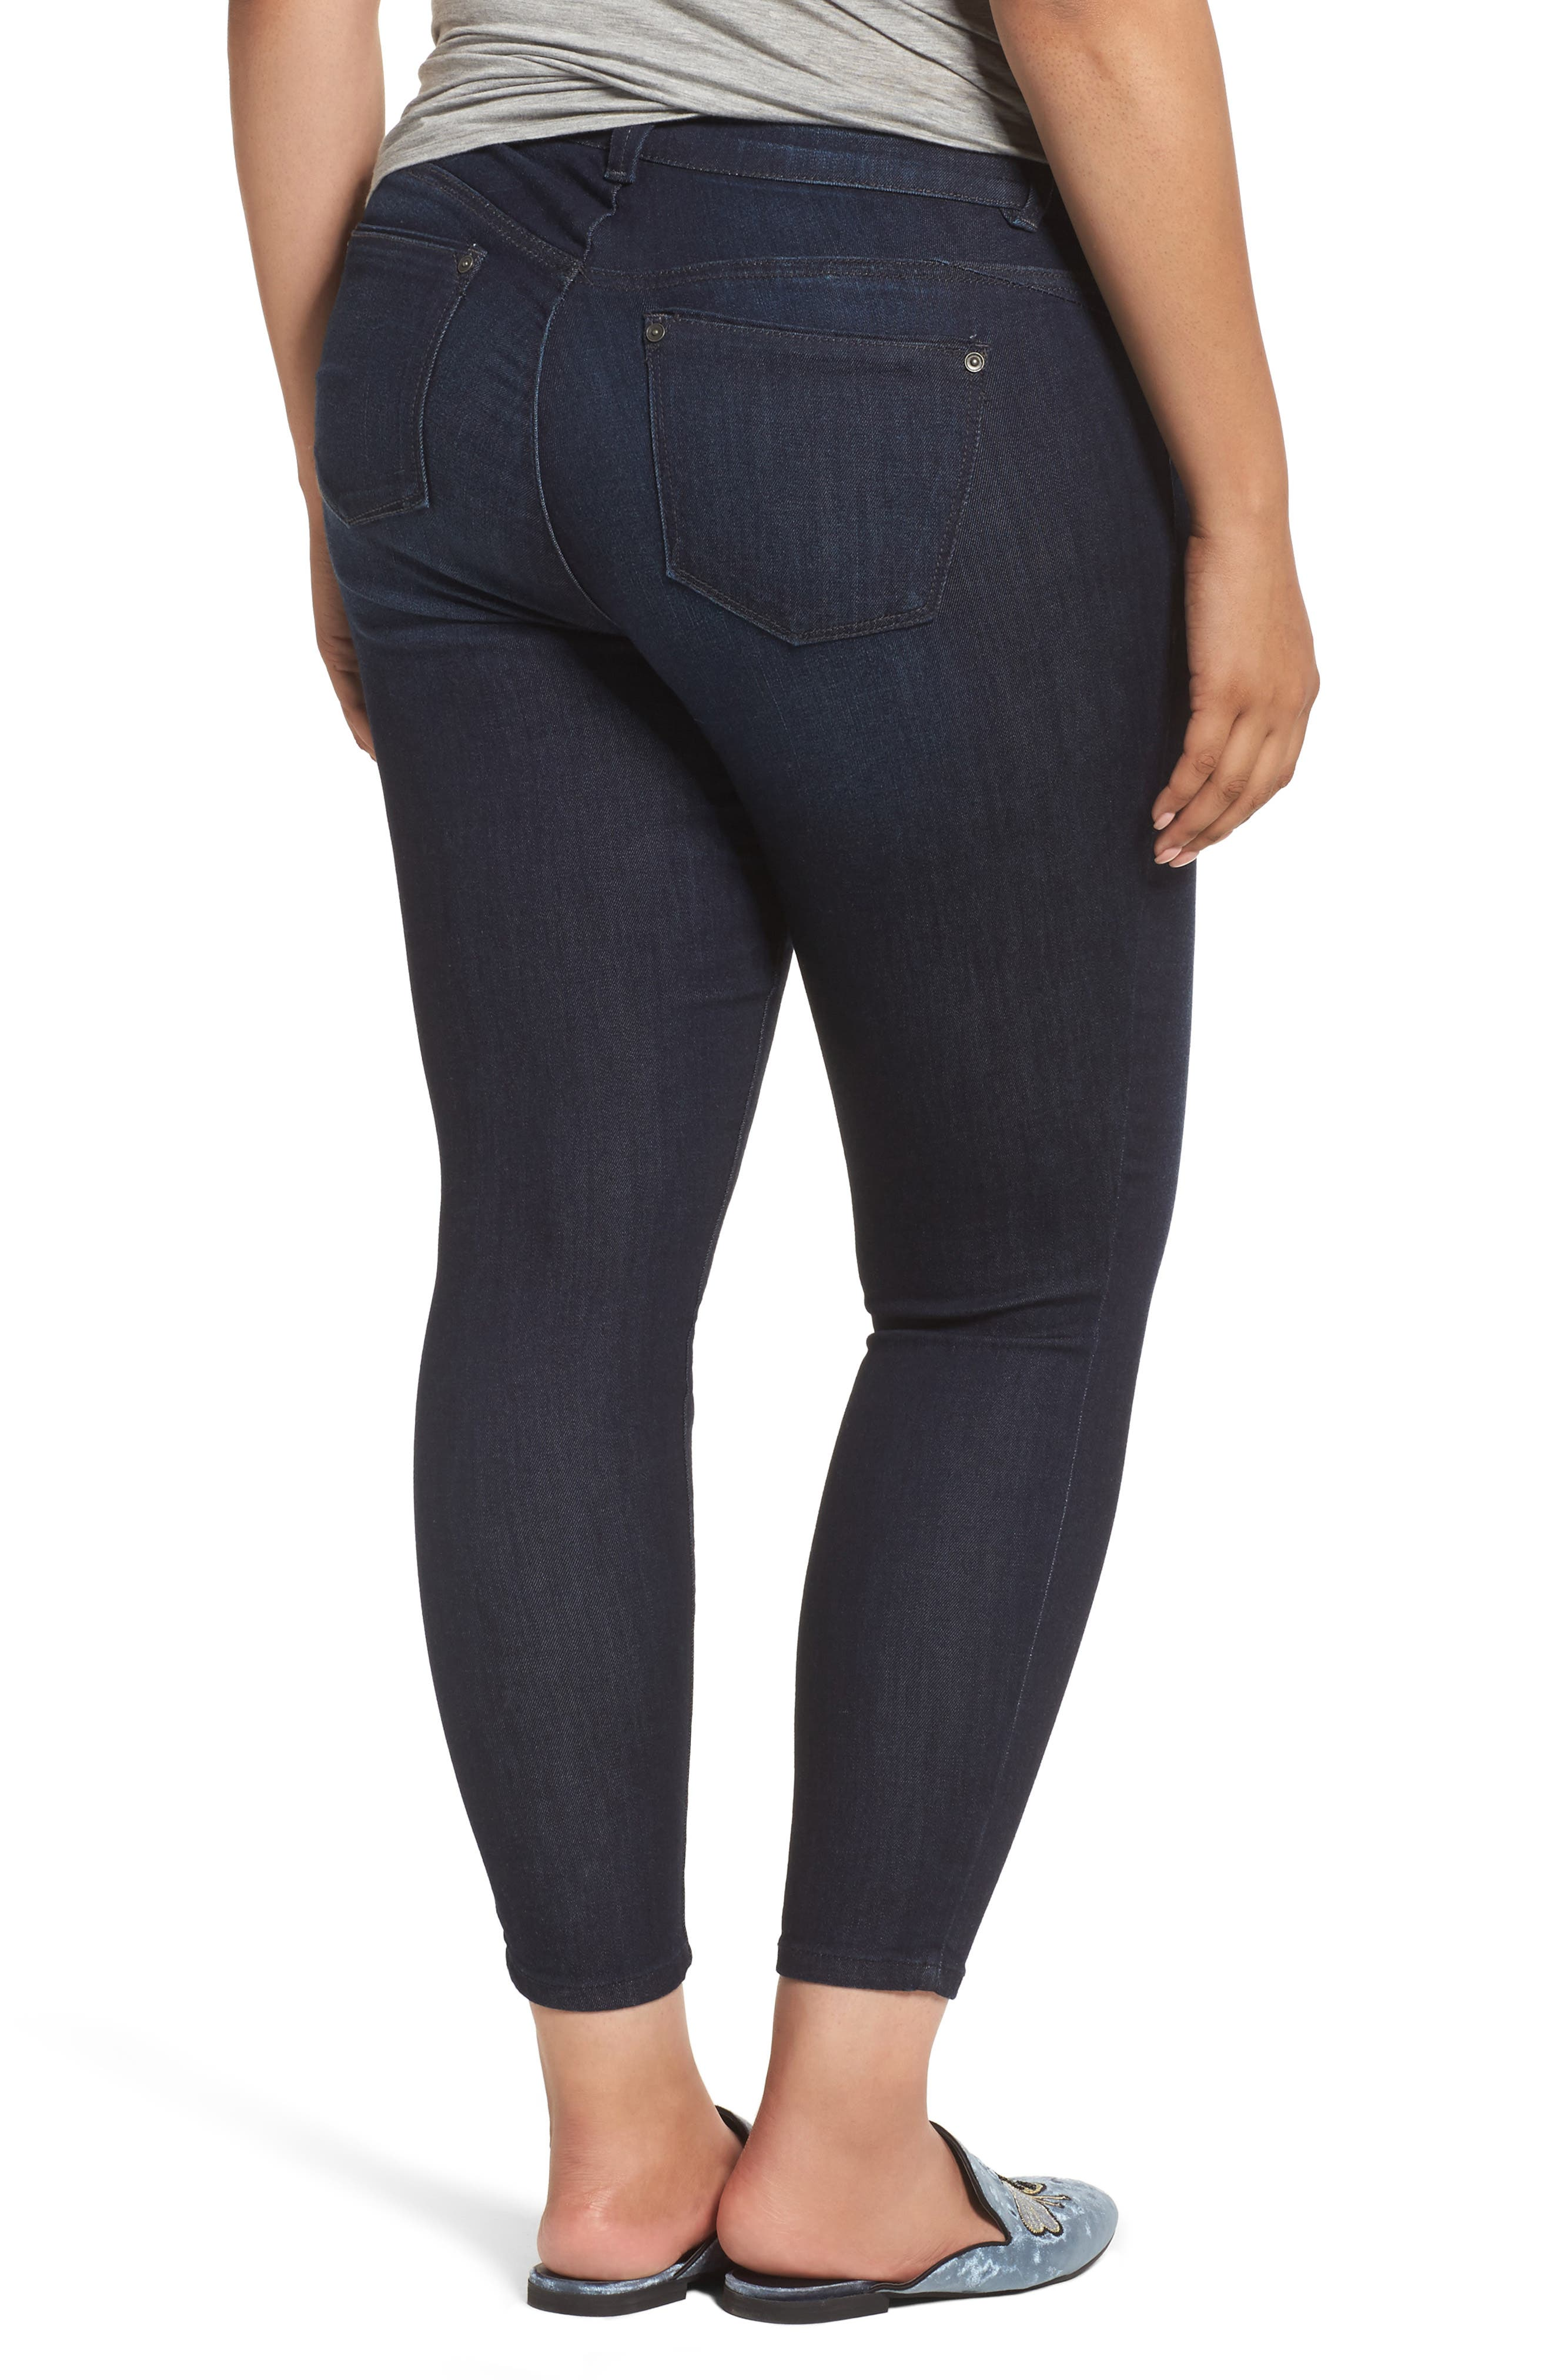 Alternate Image 2  - Wit & Wisdom Ab-solution Ankle Skimmer Jeans (Plus Size) (Nordstrom Exclusive)